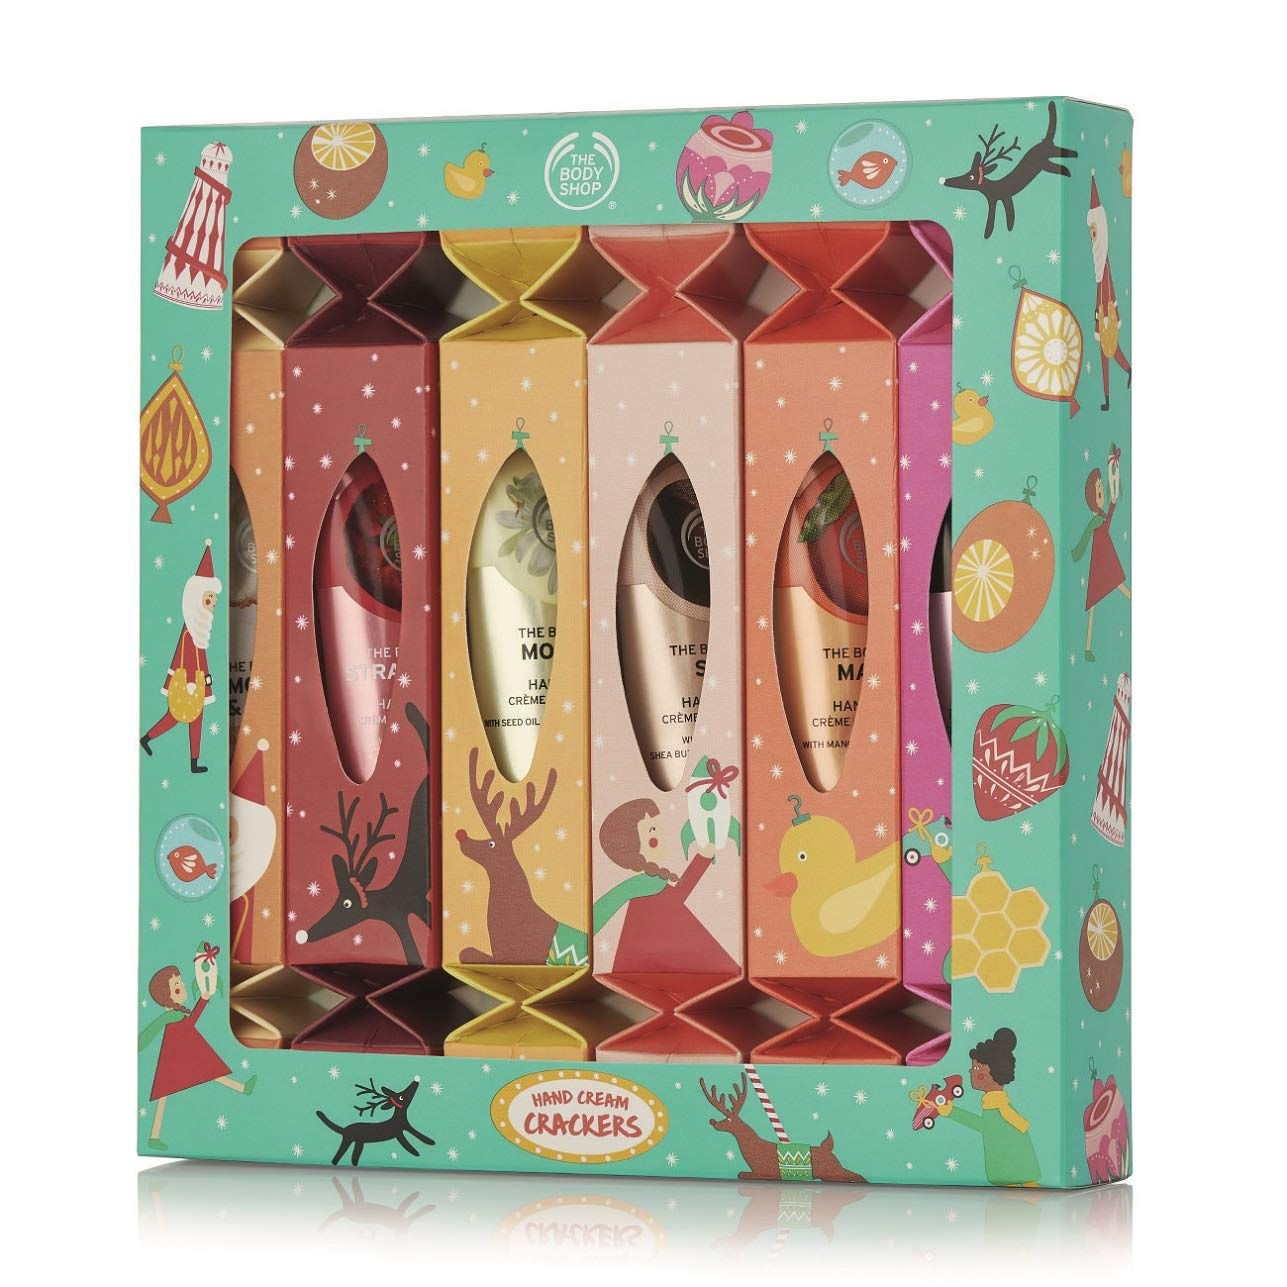 The Body Shop Hand Cream Gift Set  6 Individually-Packed Moisturizing Hand Creams  Ready To Gift